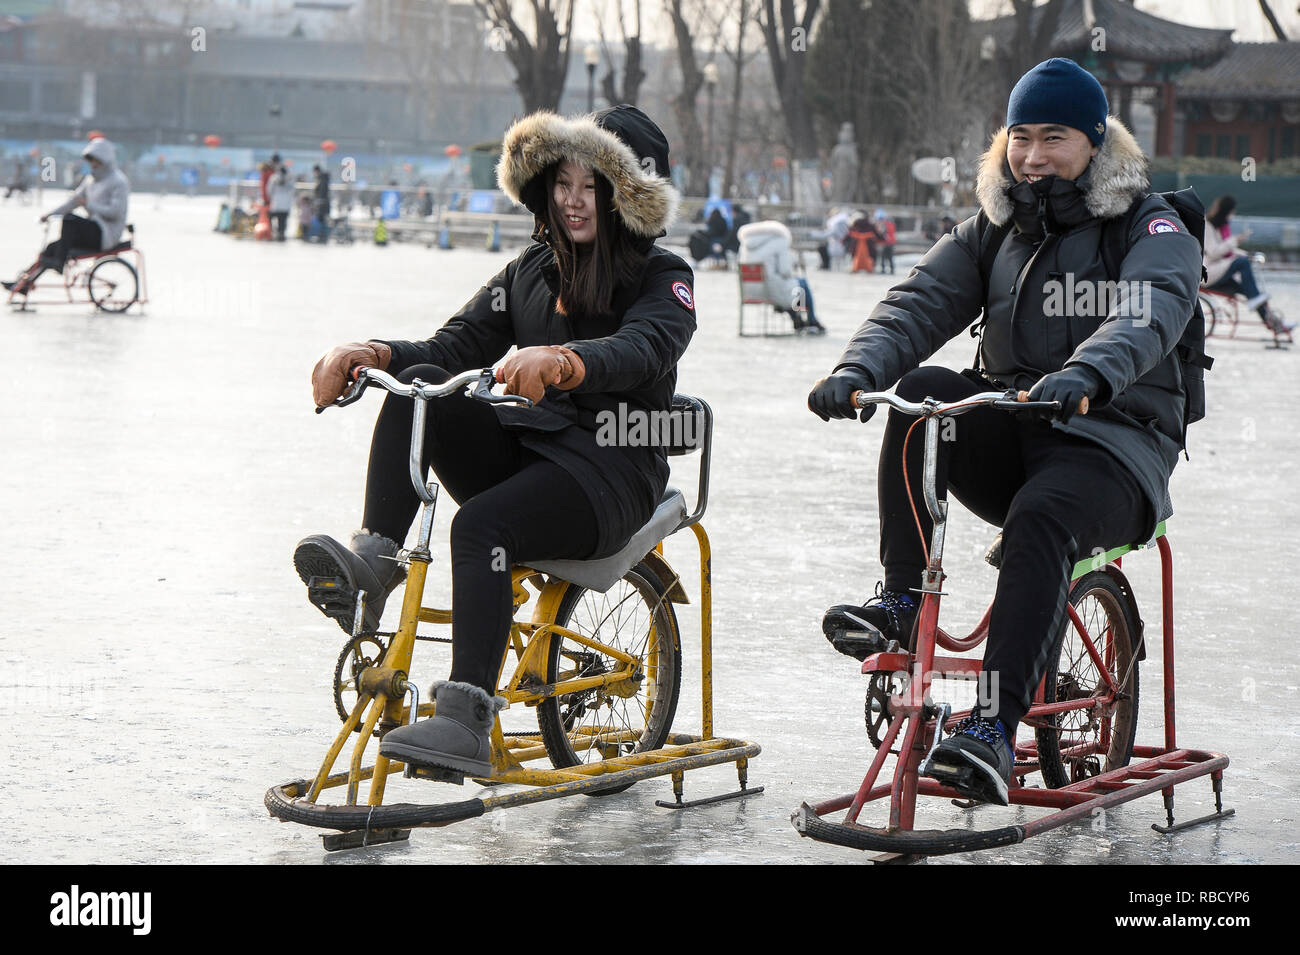 Beijing, China. 09th Jan, 2019. People ride ice bikes and skating on a frozen Qianhai lake in the center of Beijing, China on 09/01/2019 by Wiktor Dabkowski | usage worldwide Credit: dpa/Alamy Live News - Stock Image